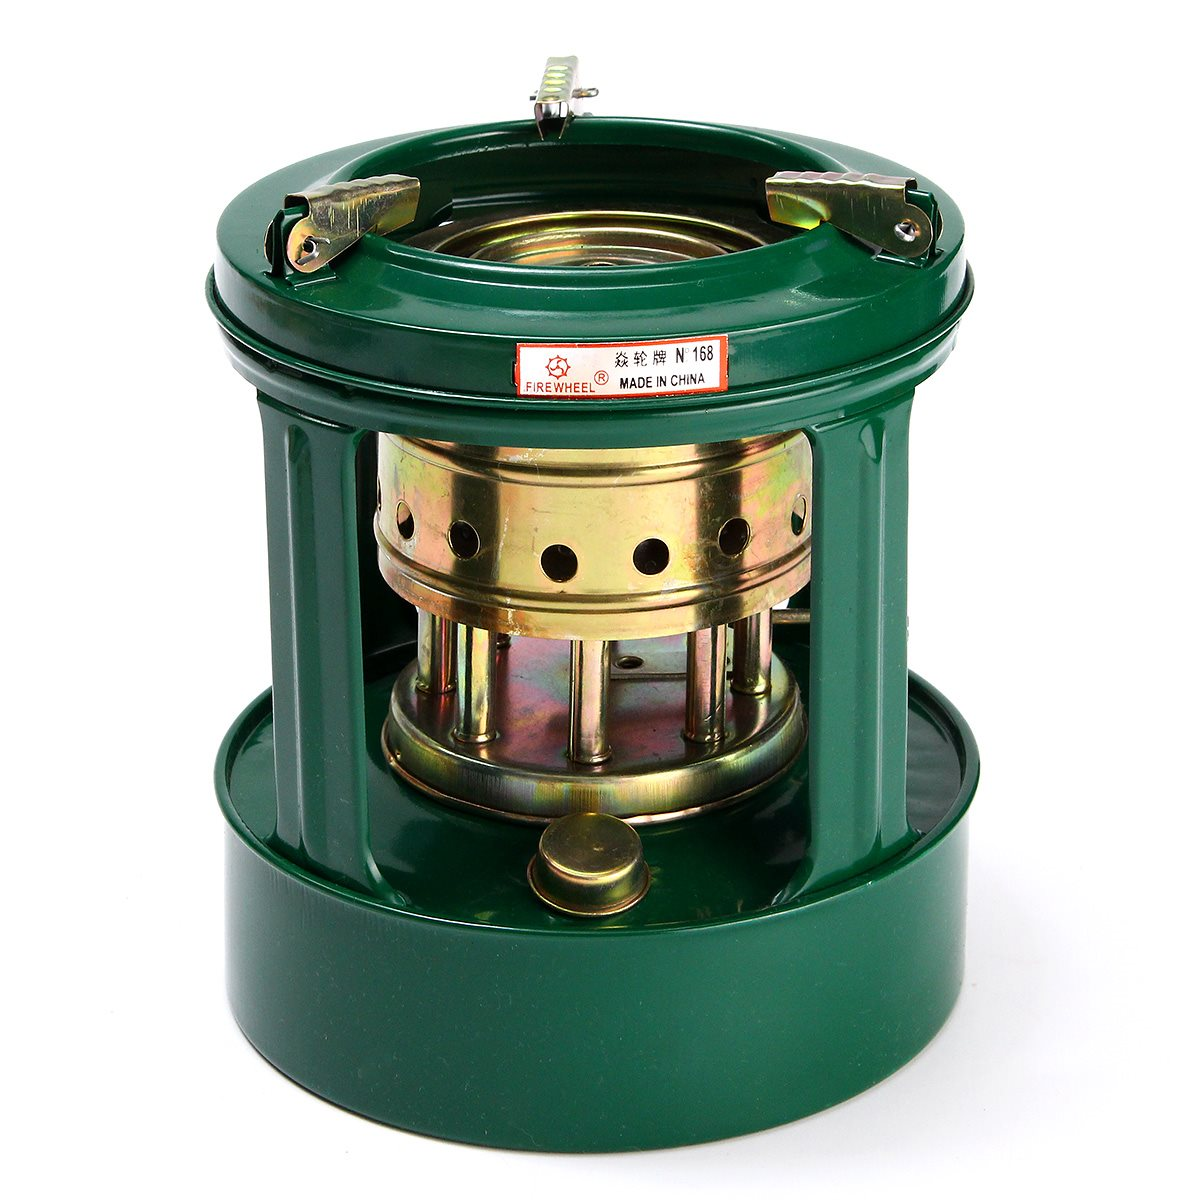 Portable Handy Removable Gas Stove Handy Portable Outdoor 8 Wicks ... for Kerosene Camp Stove  303mzq